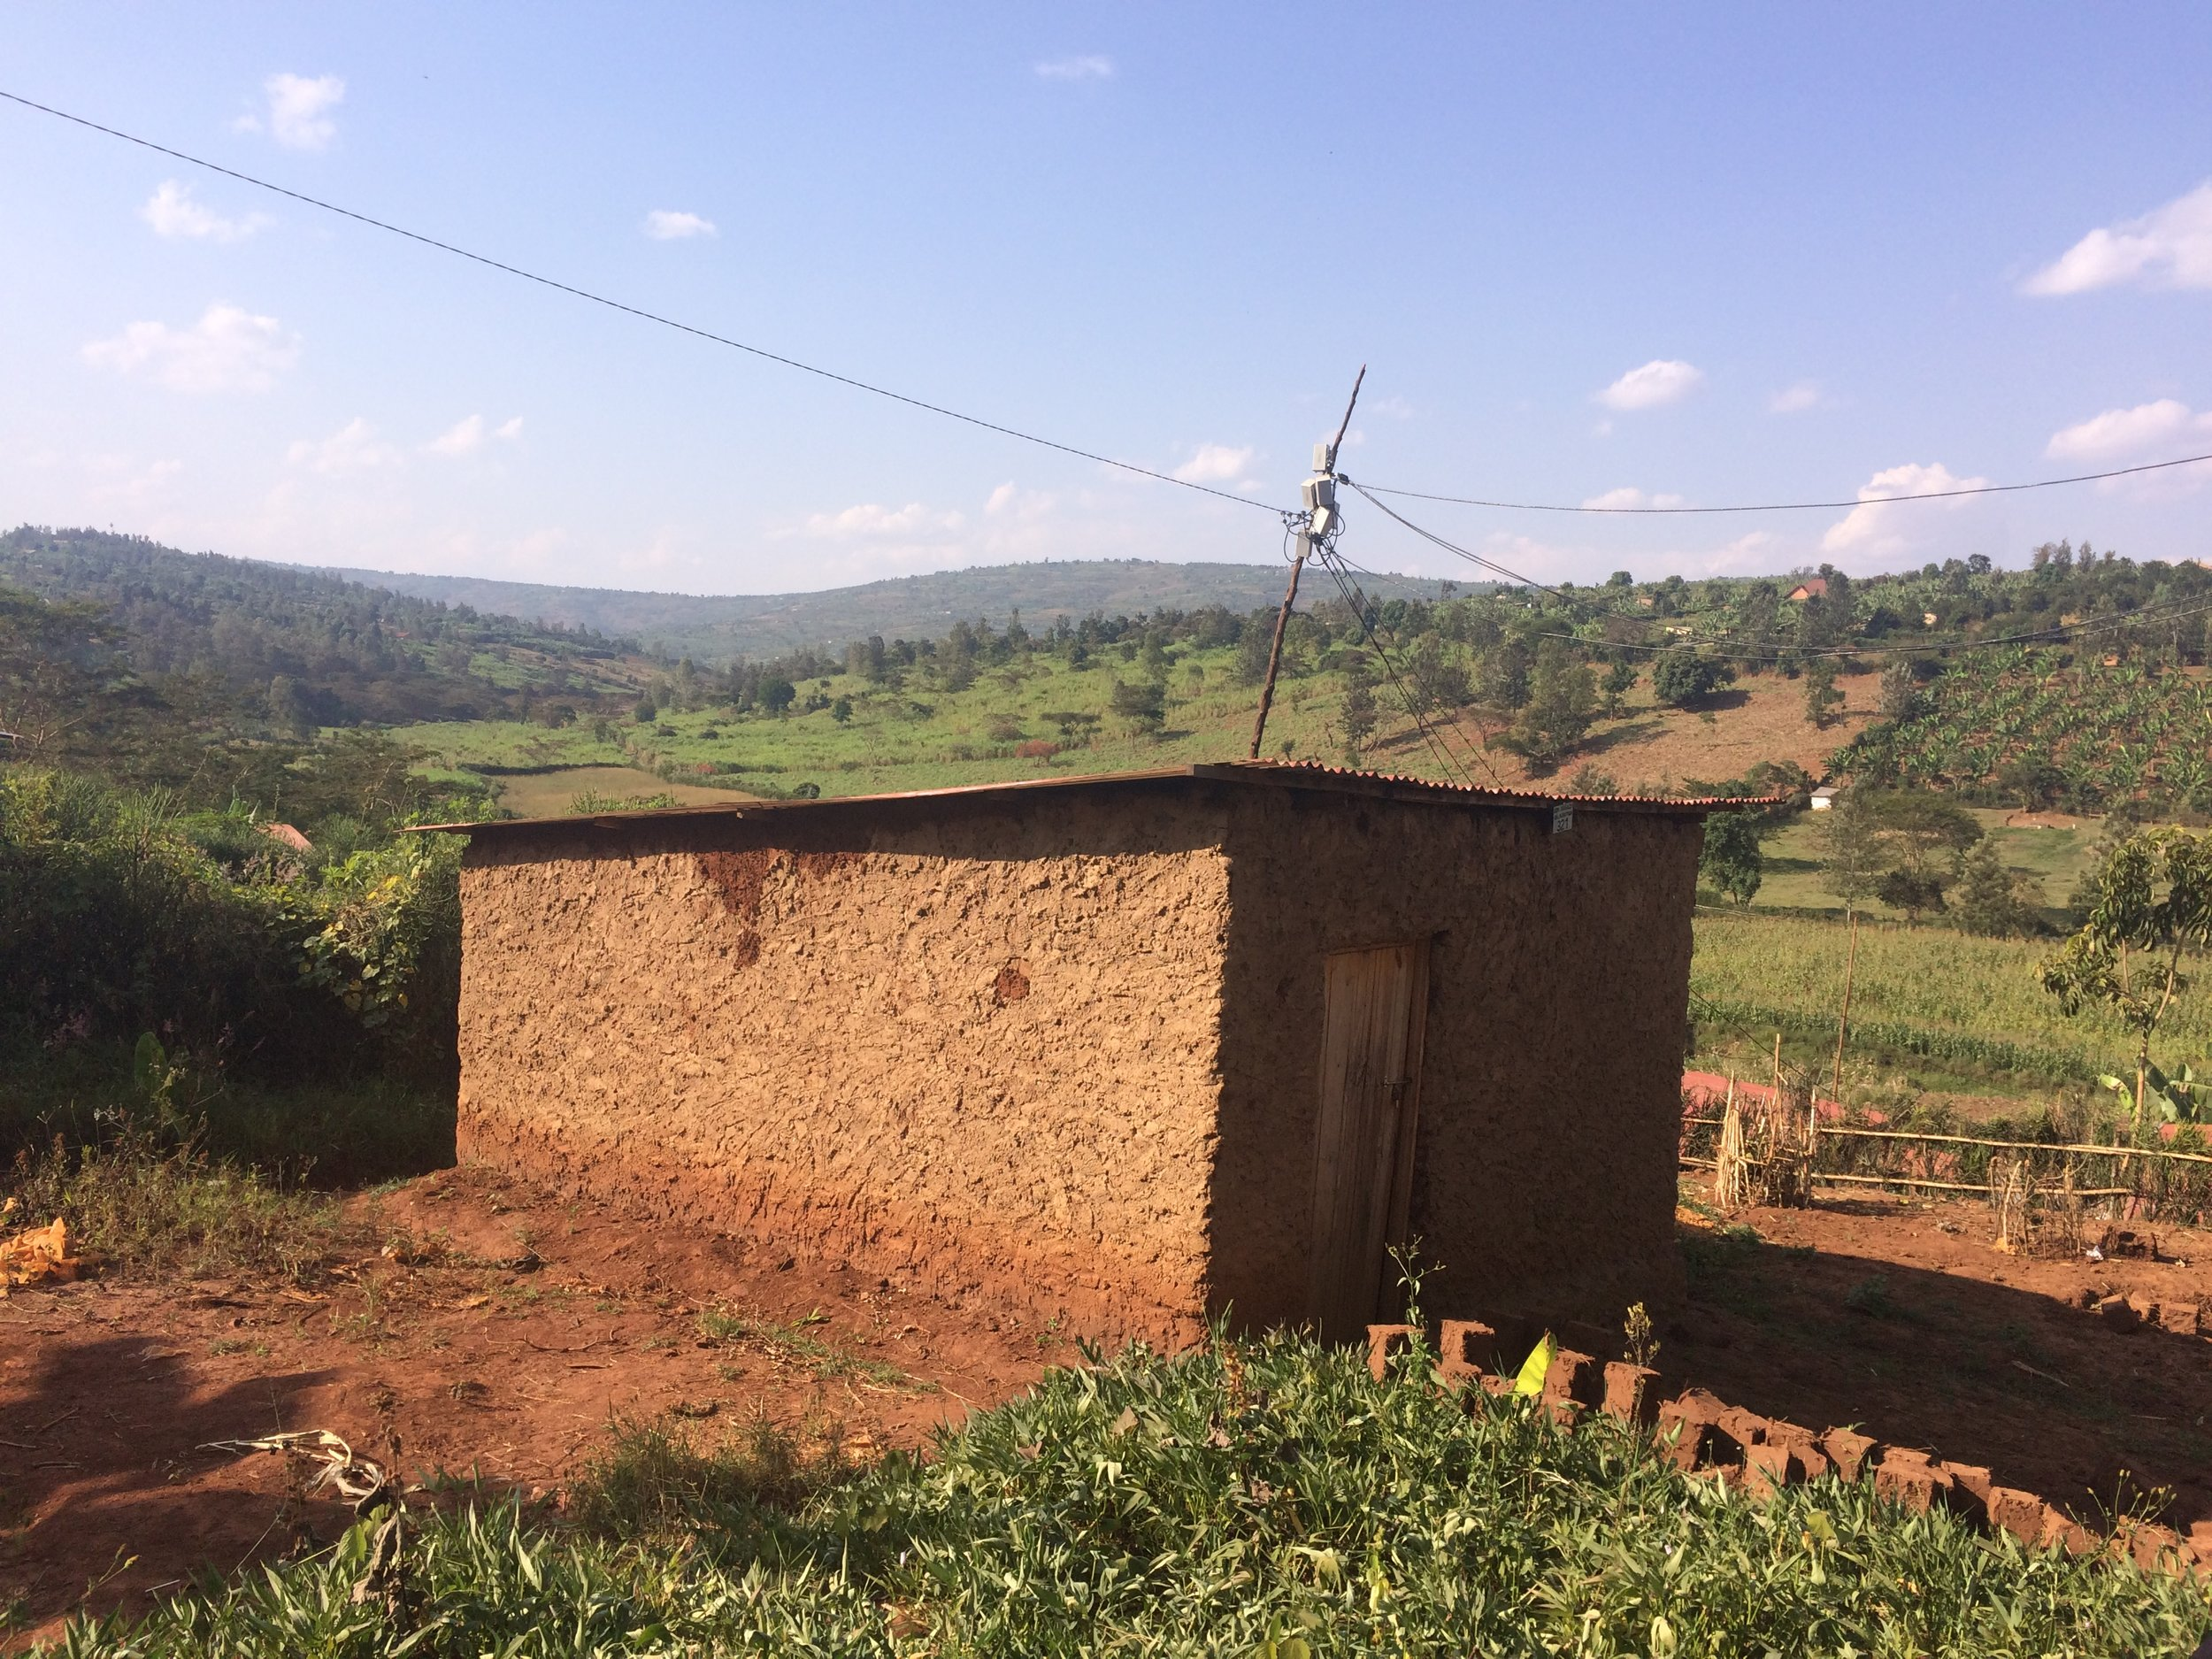 View from a village where I shadowed the health team in an ANC home visit.